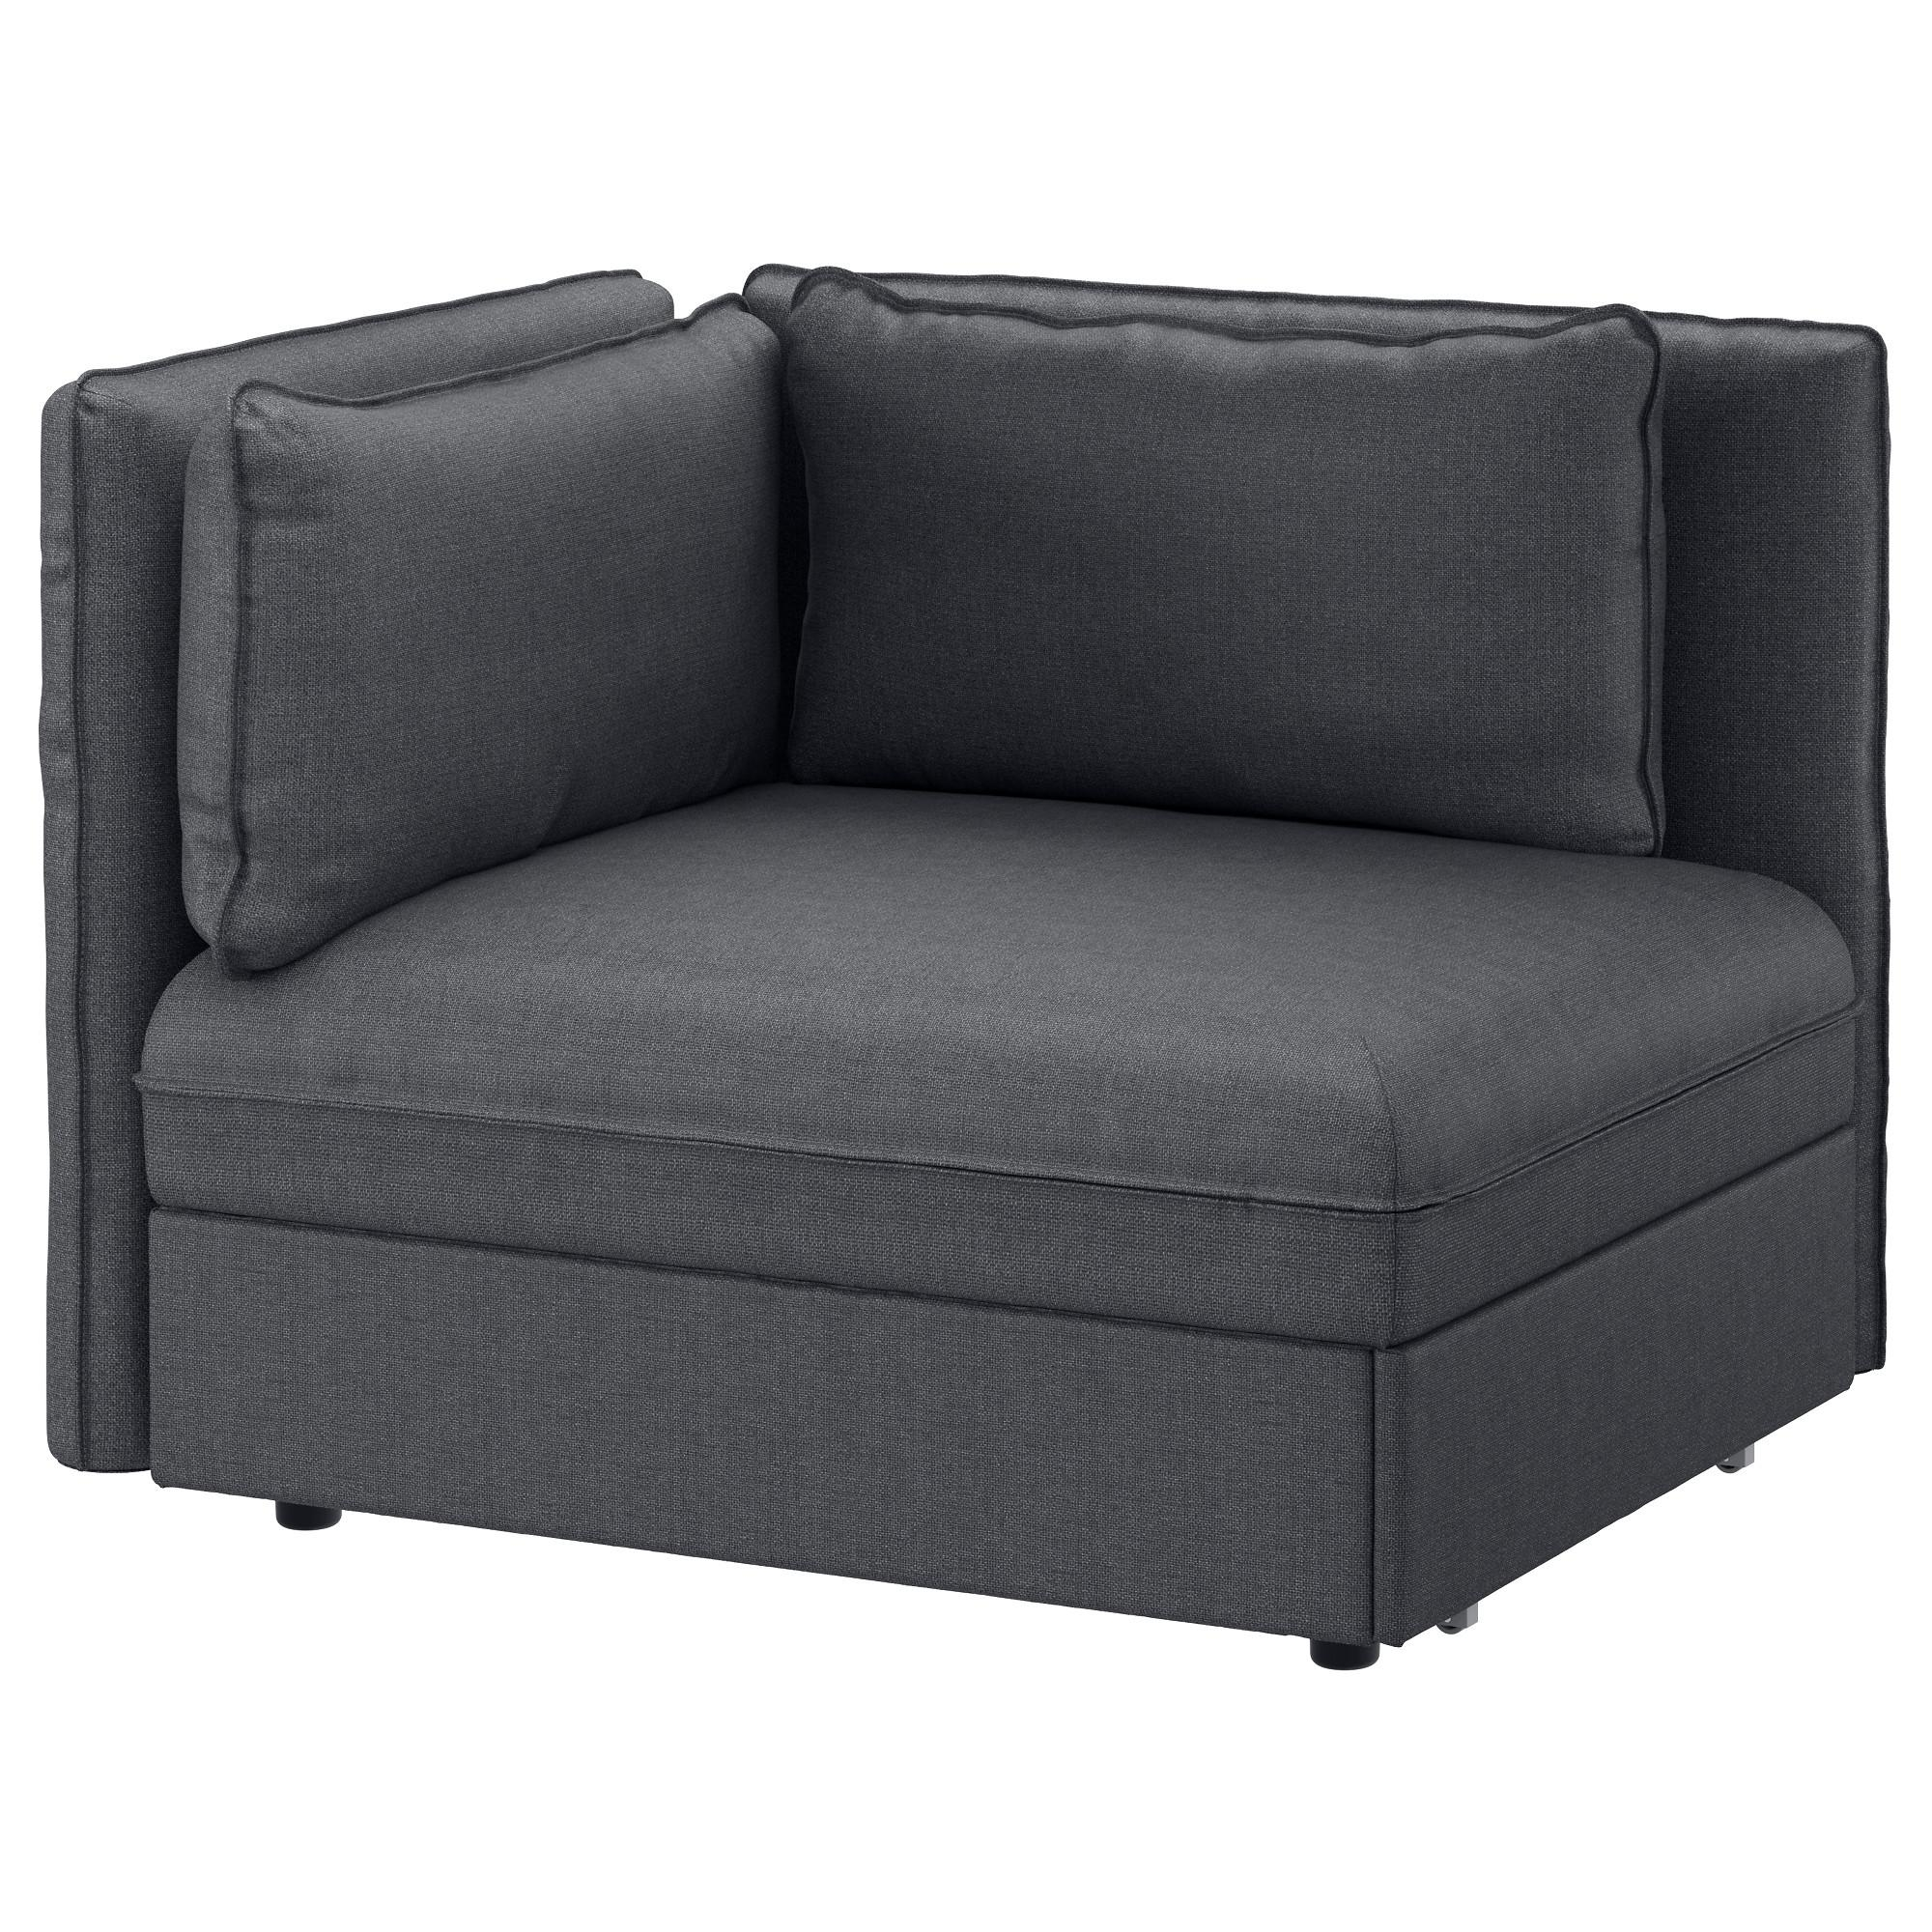 Sofa Beds & Futons – Ikea Regarding Sleeper Sofa Sectional Ikea (Image 19 of 20)